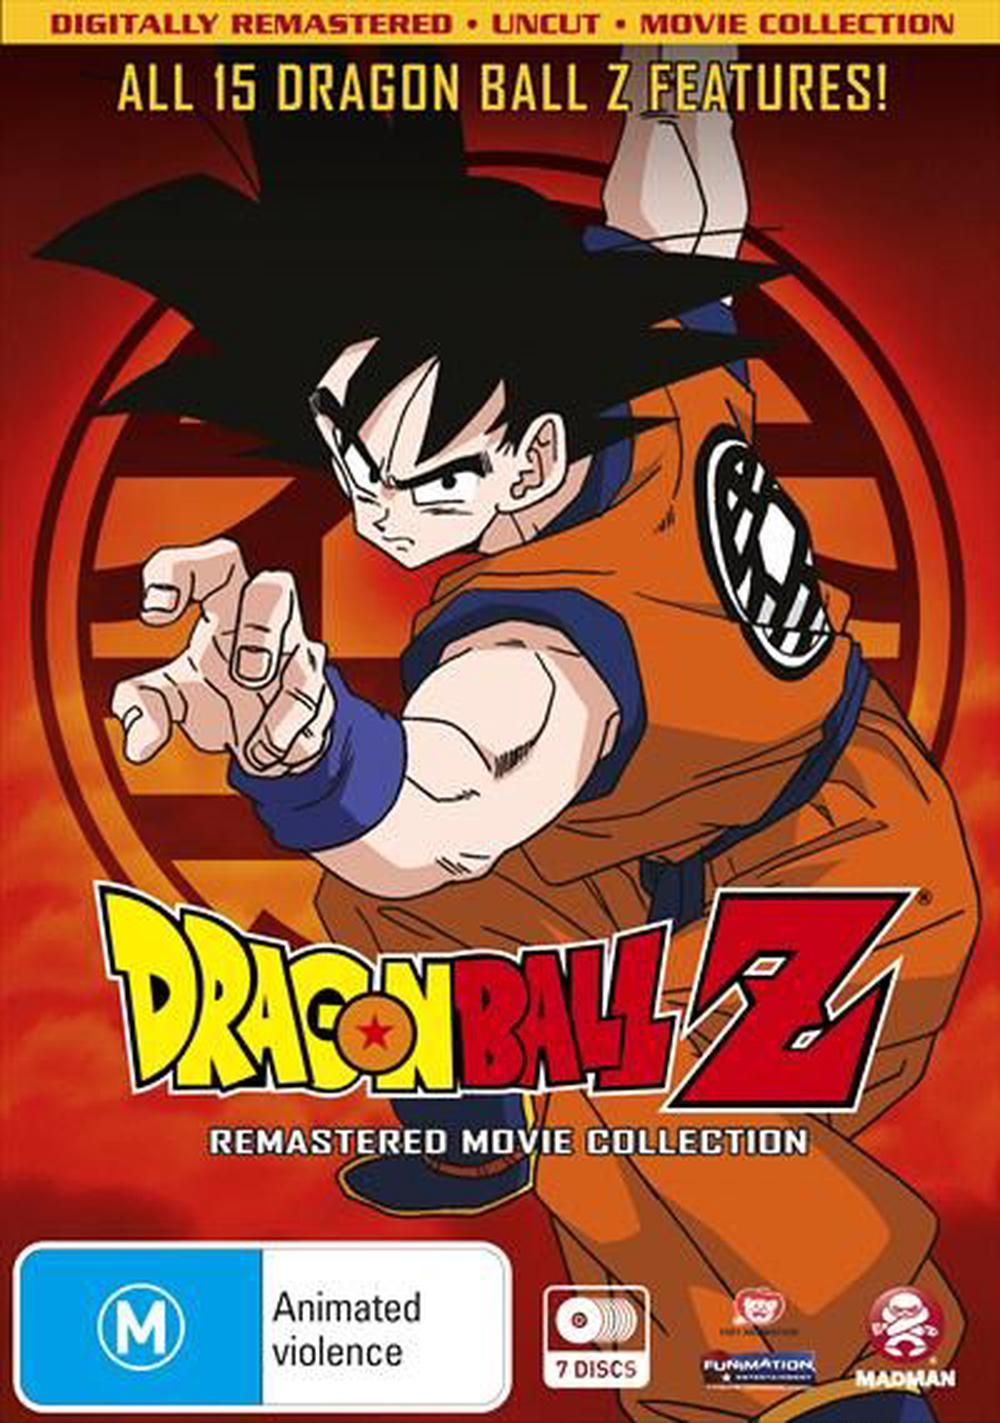 All dragon ball z movies in chronological order